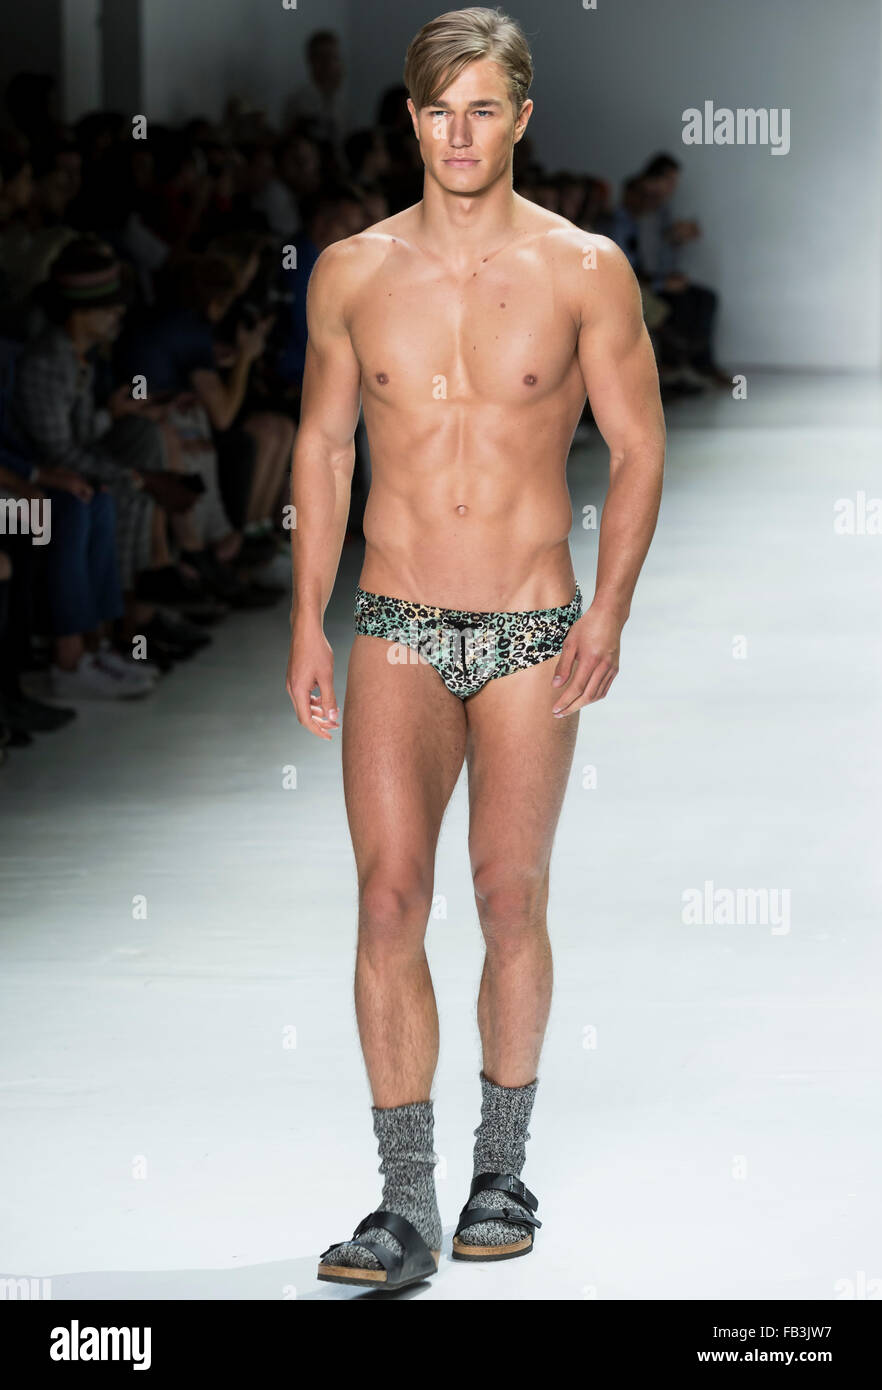 NEW YORK, NY - JULY 16, 2015: Laurin Krausz walks the runway during the Parke & Ronen show at NYFW Men's S/S - Stock Image